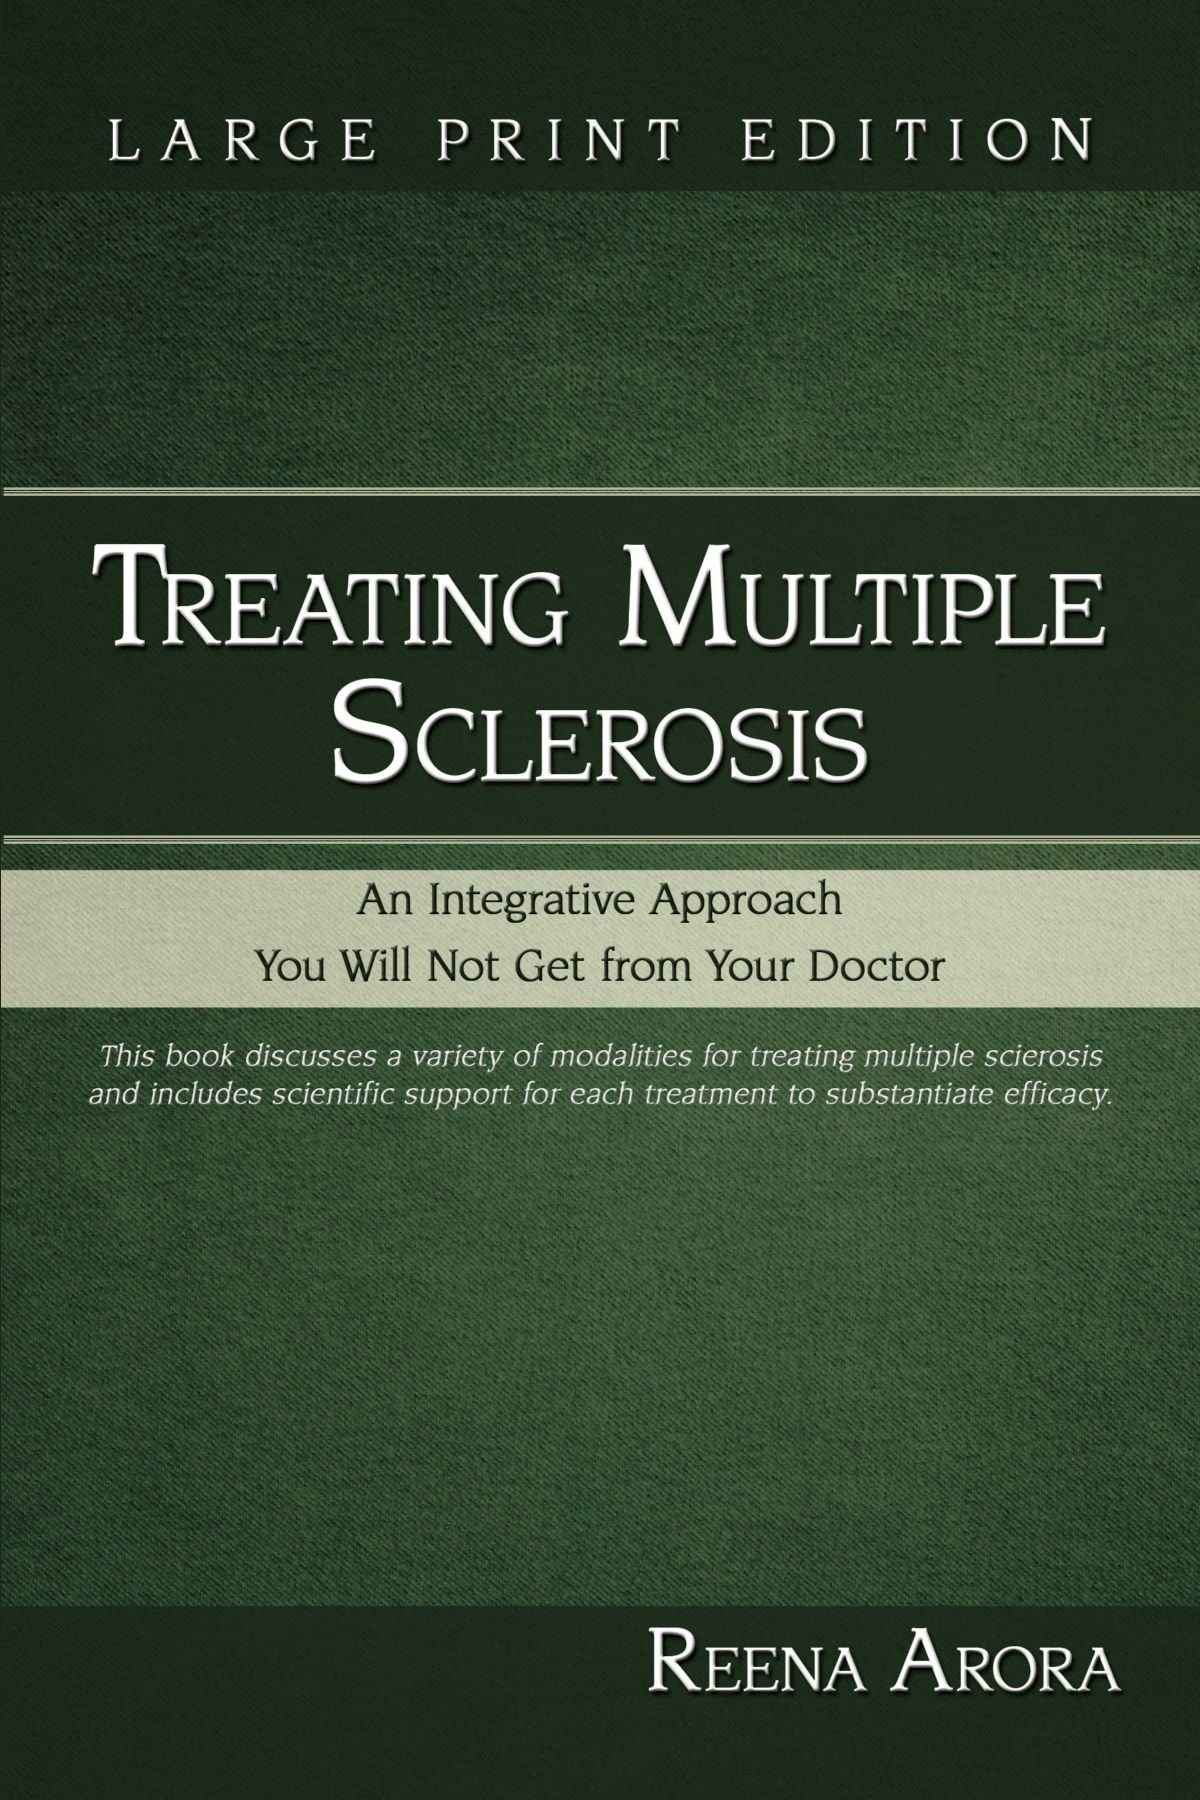 TreatingMultipleSclerosis